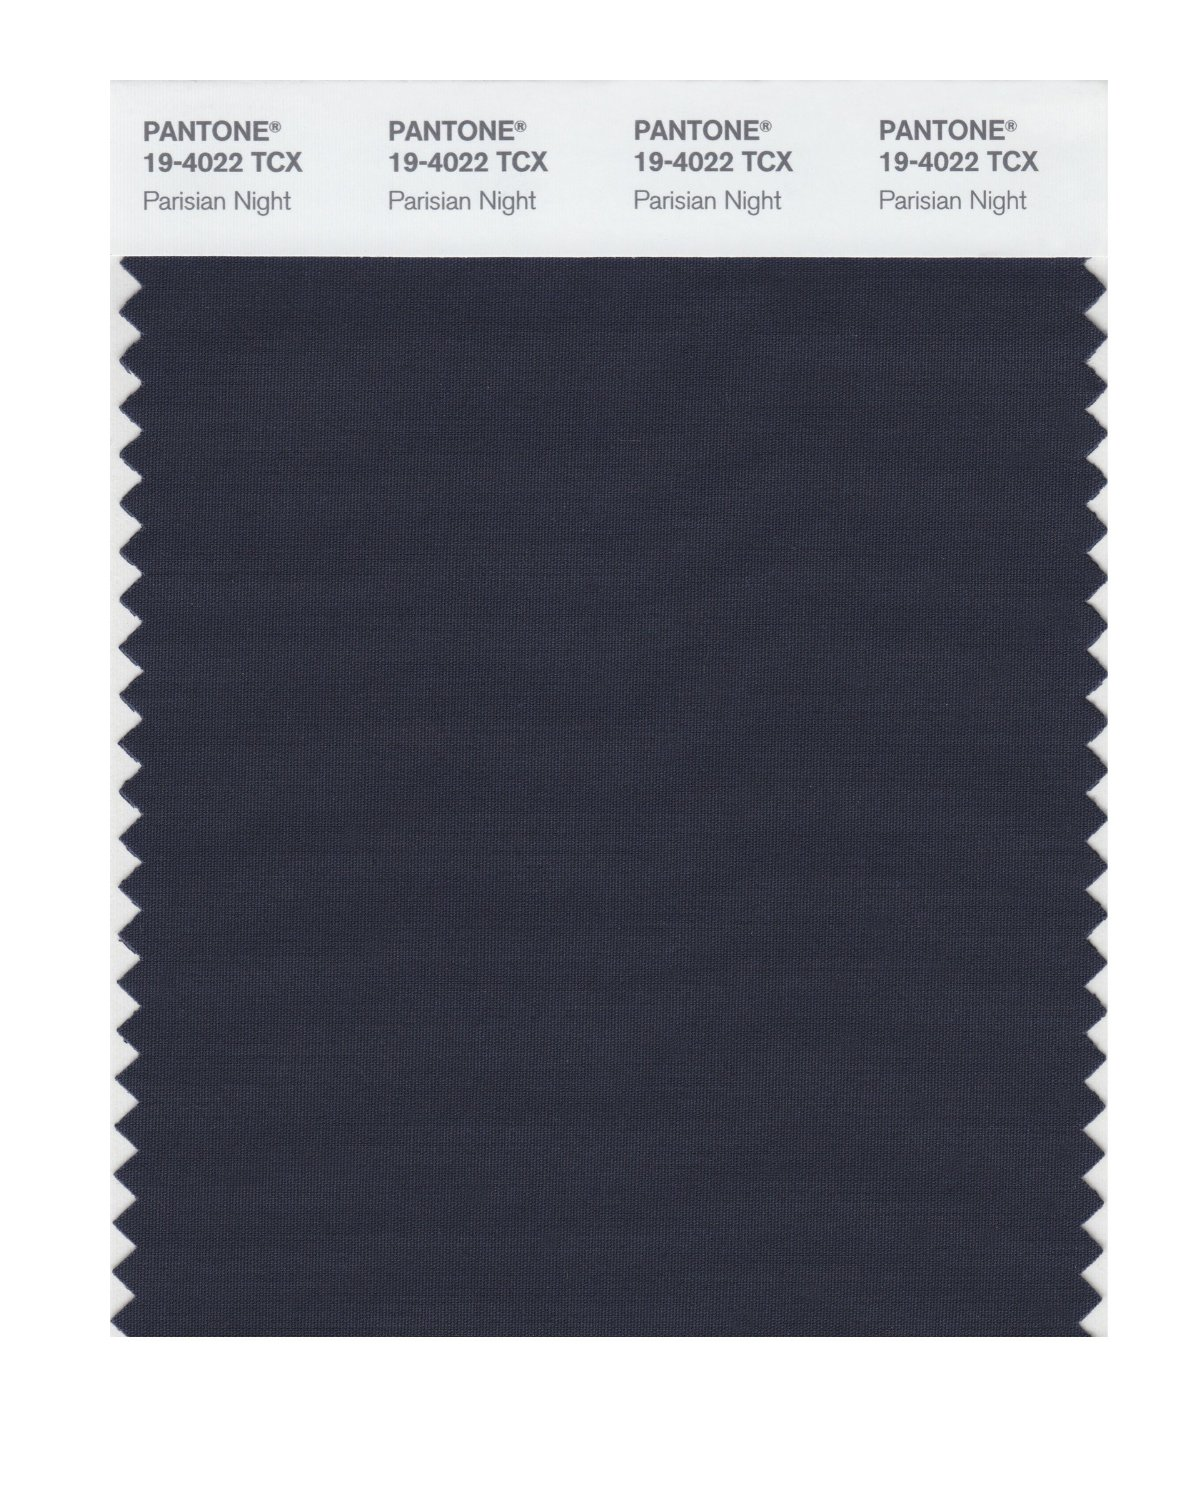 Pantone Smart Swatch 19-4022 Parisian Night